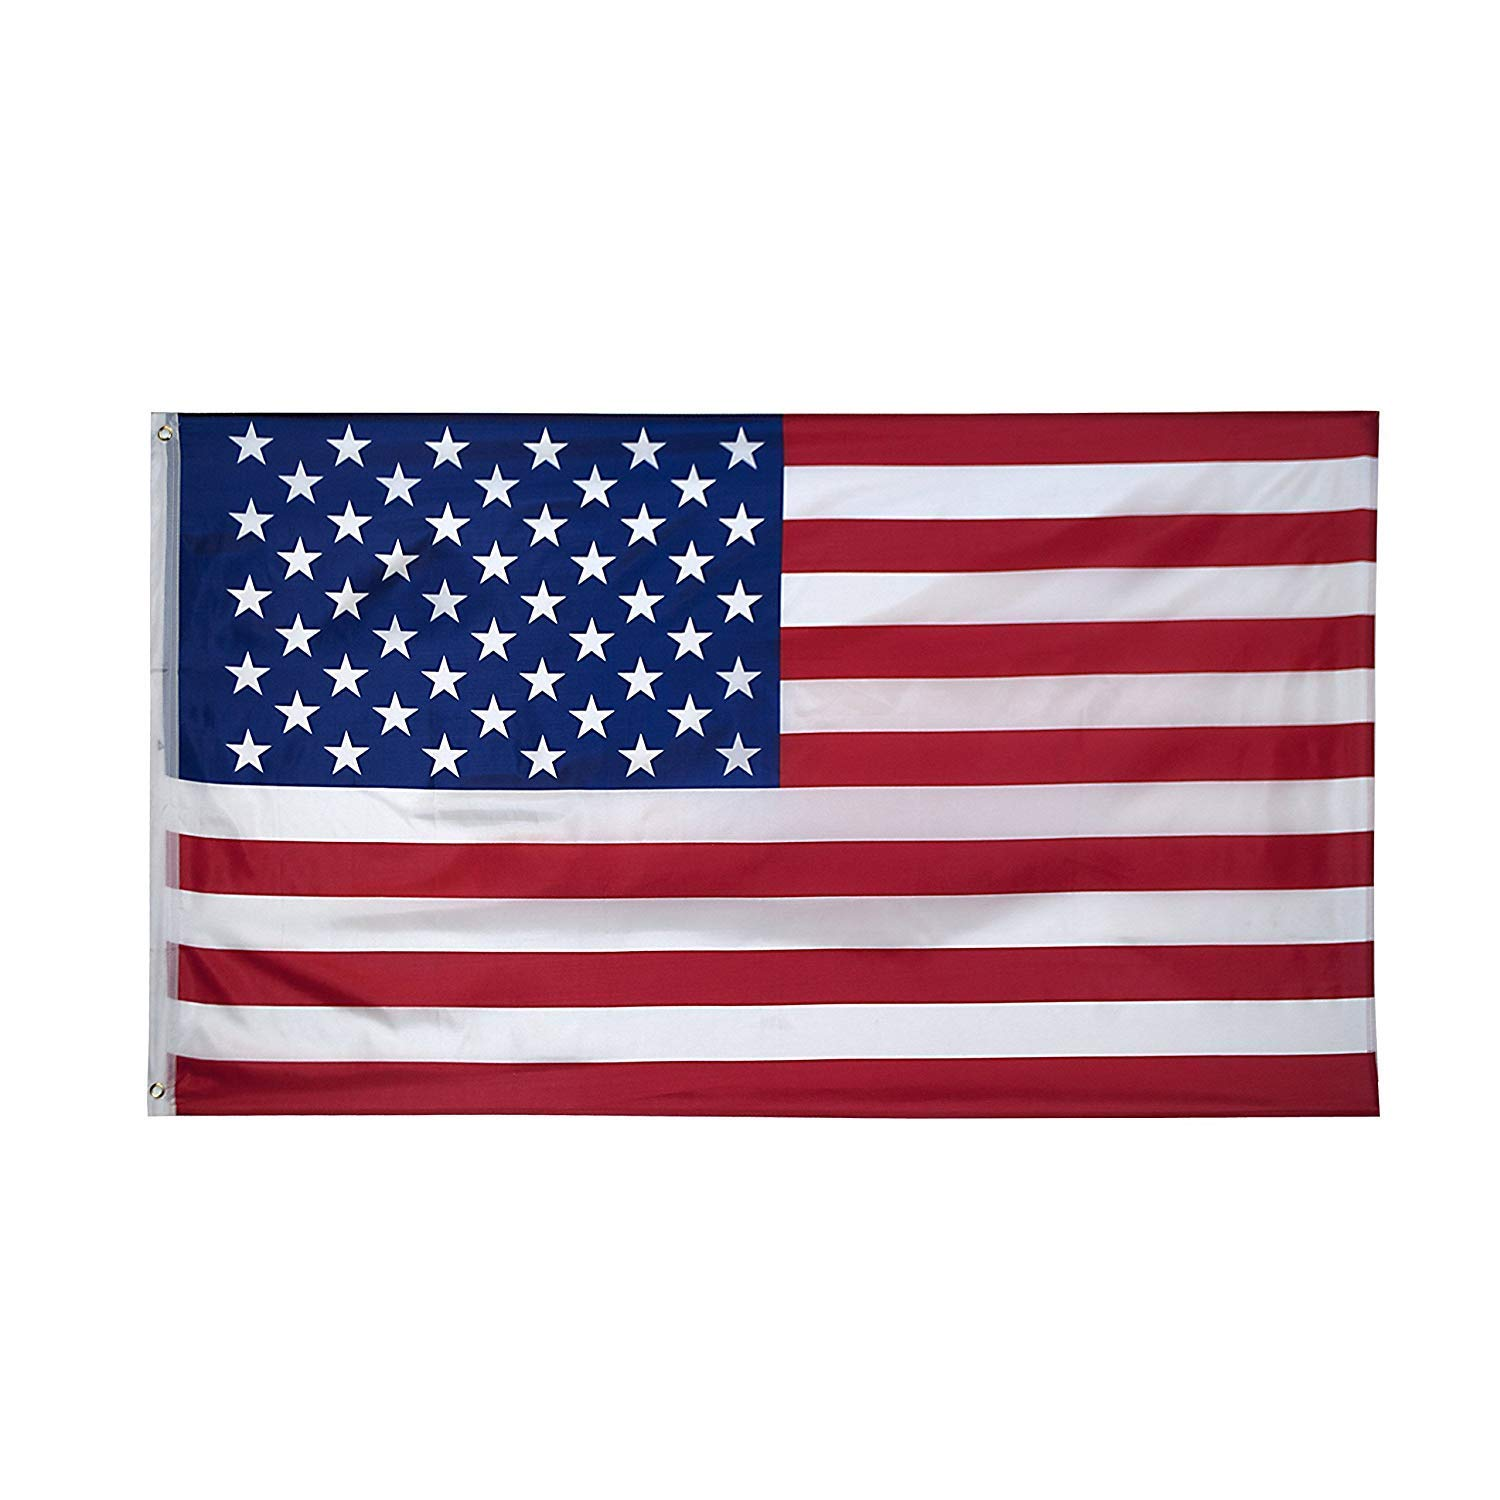 Great American flag